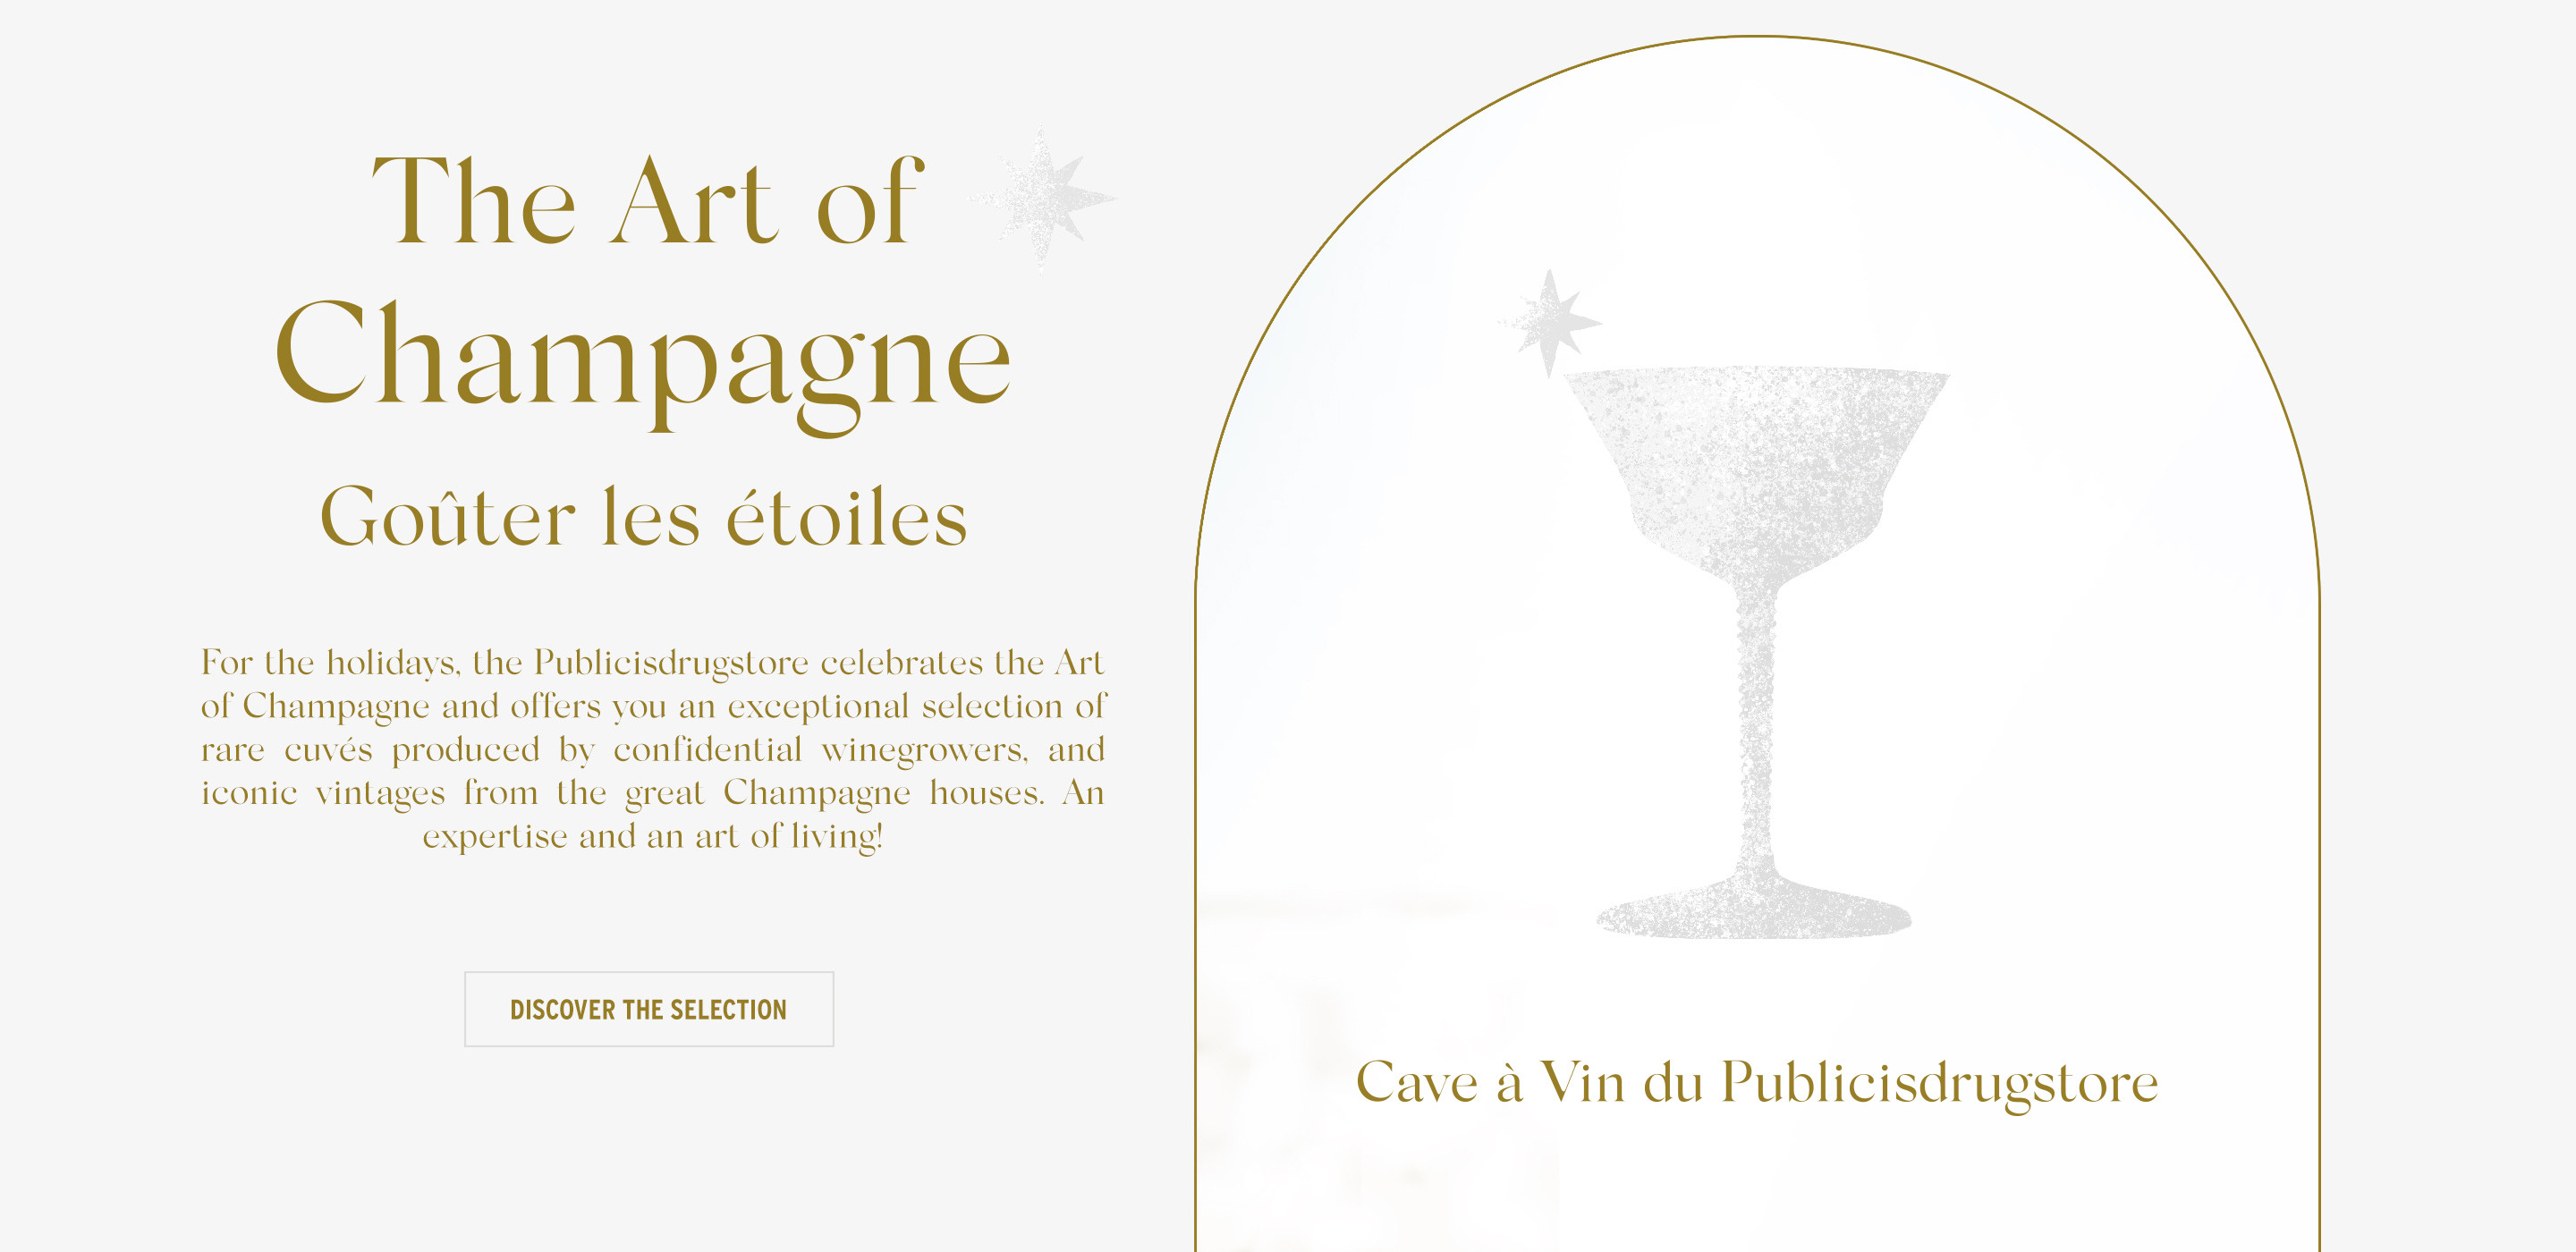 The Art of Champagne !